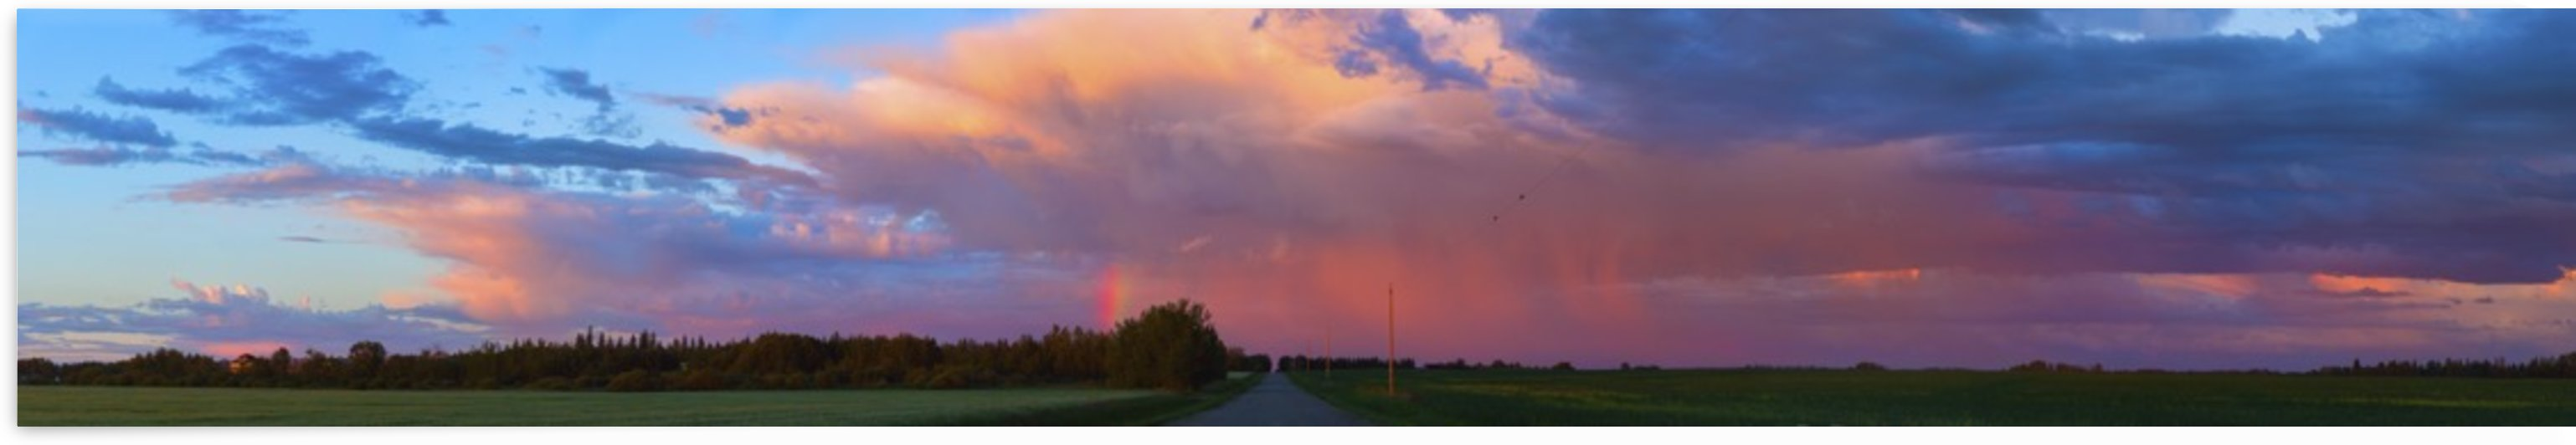 Glowing pink clouds over green fields and a country road at sunset; Alberta, Canada by PacificStock